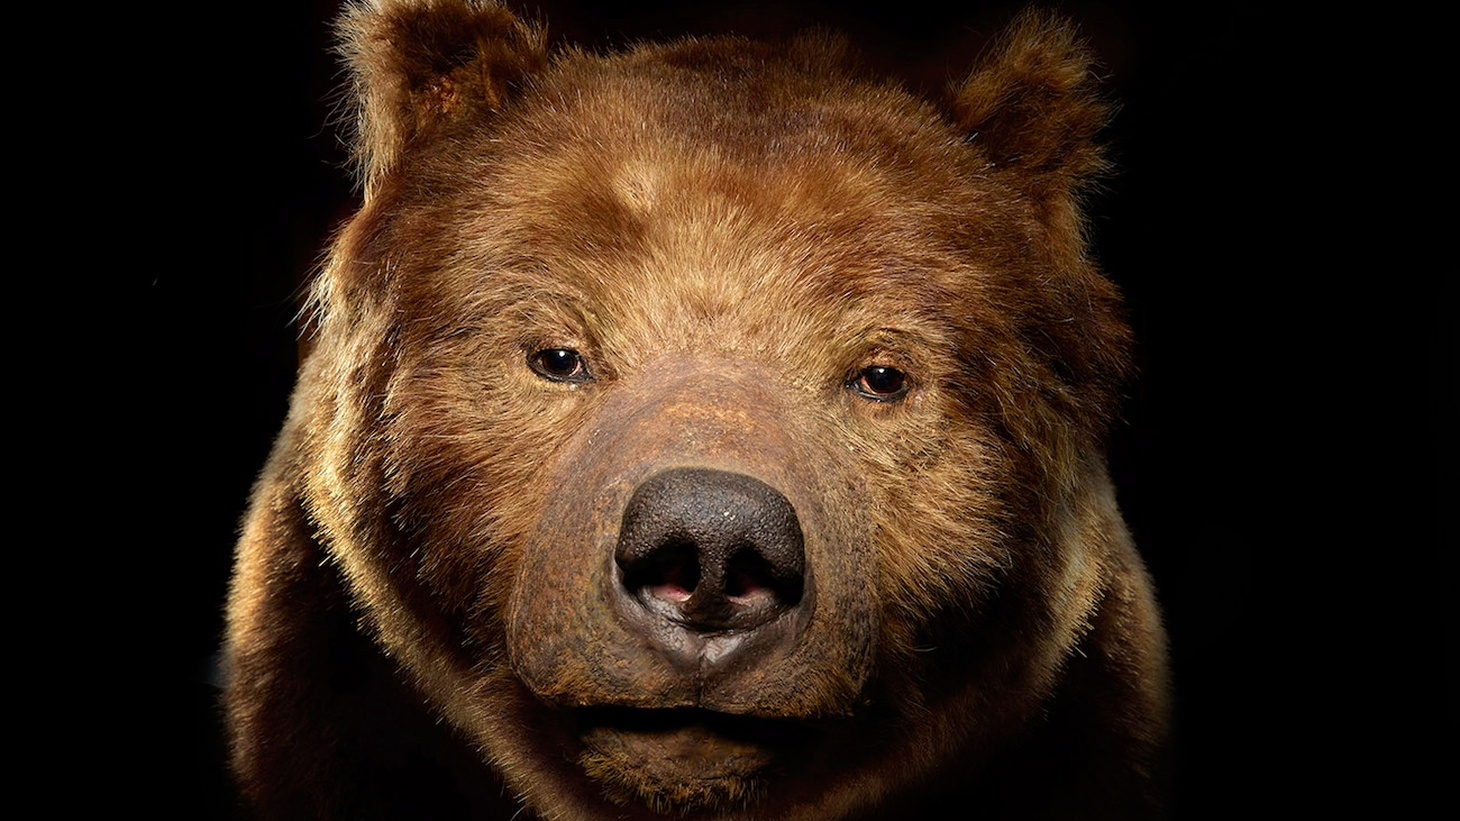 Today's North American grizzly bears are mostly found in the remote mountains of Montana, Wyoming, and Alaska, but back in the 1800s, coastal California was prime grizzly country.